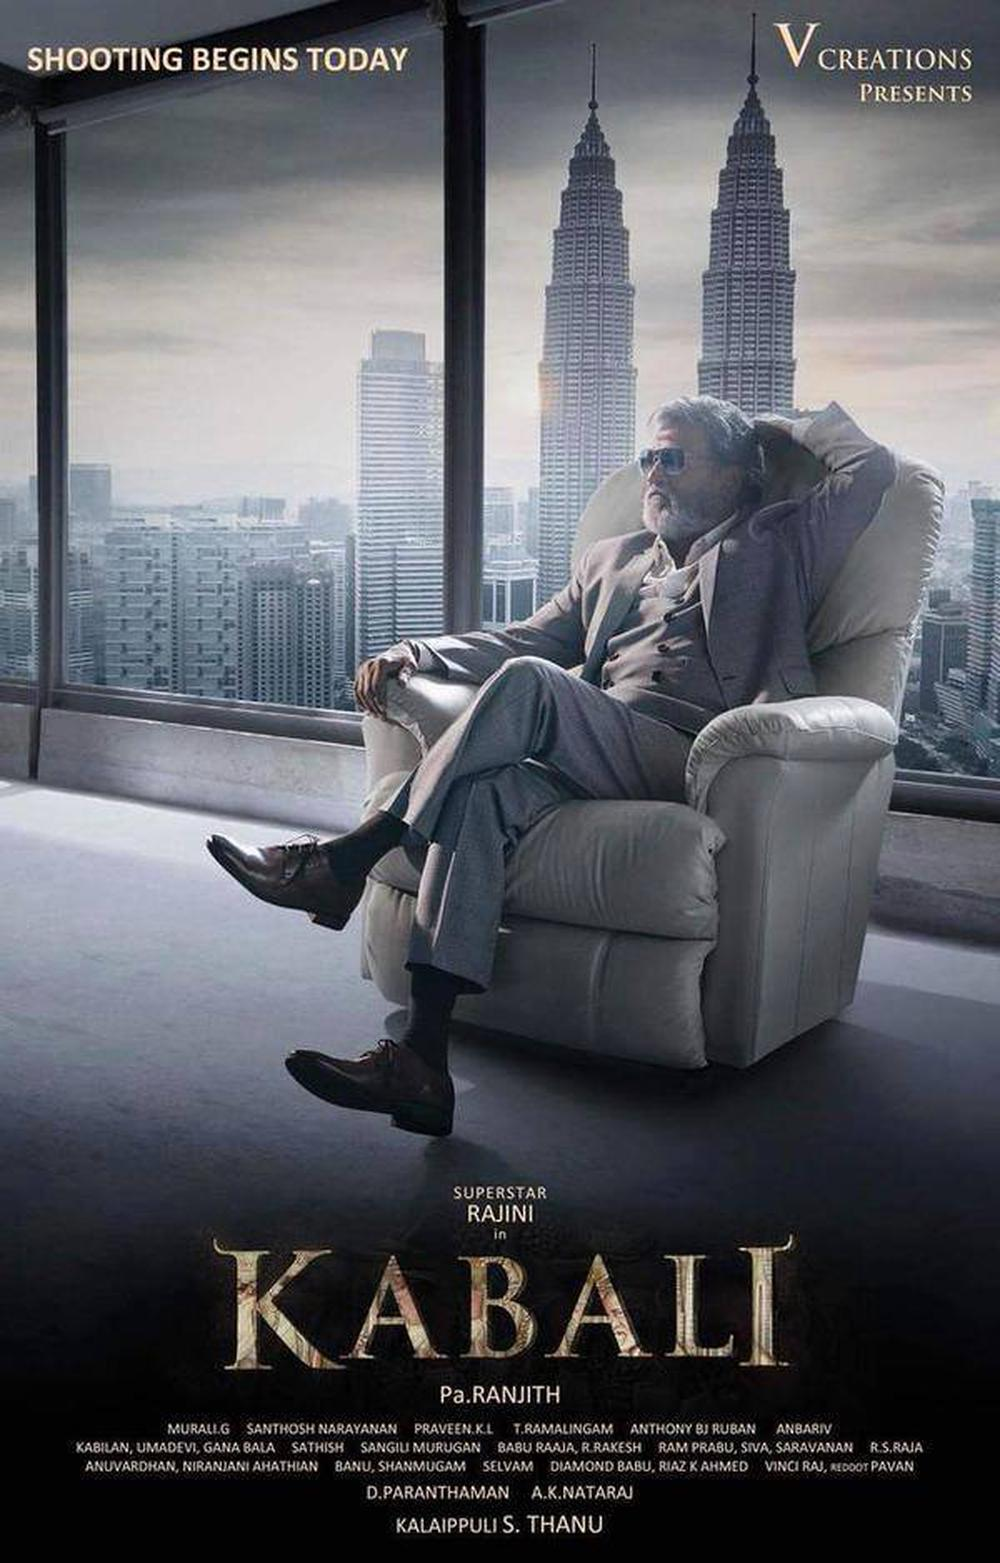 Rajinikanth kabali images hd download